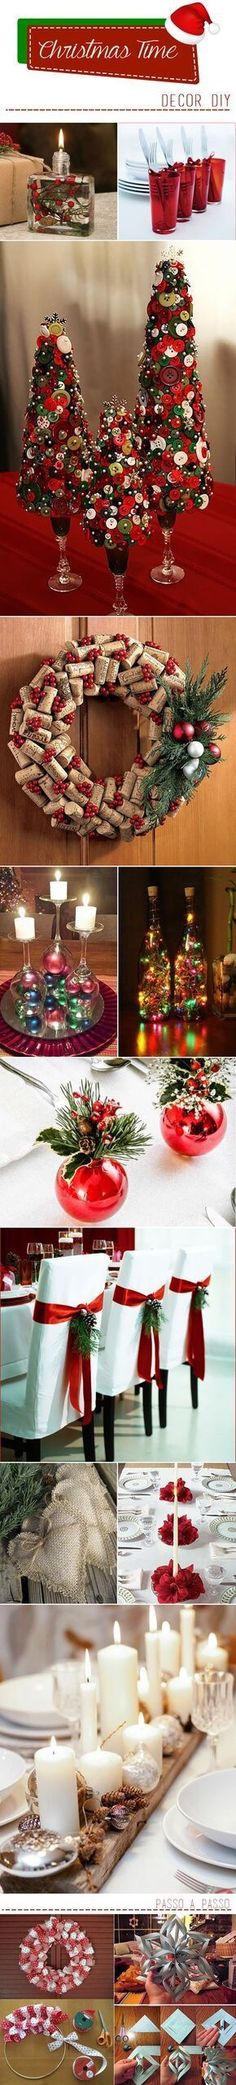 70 Best Christmas!!!!! images in 2018 Xmas, Christmas china